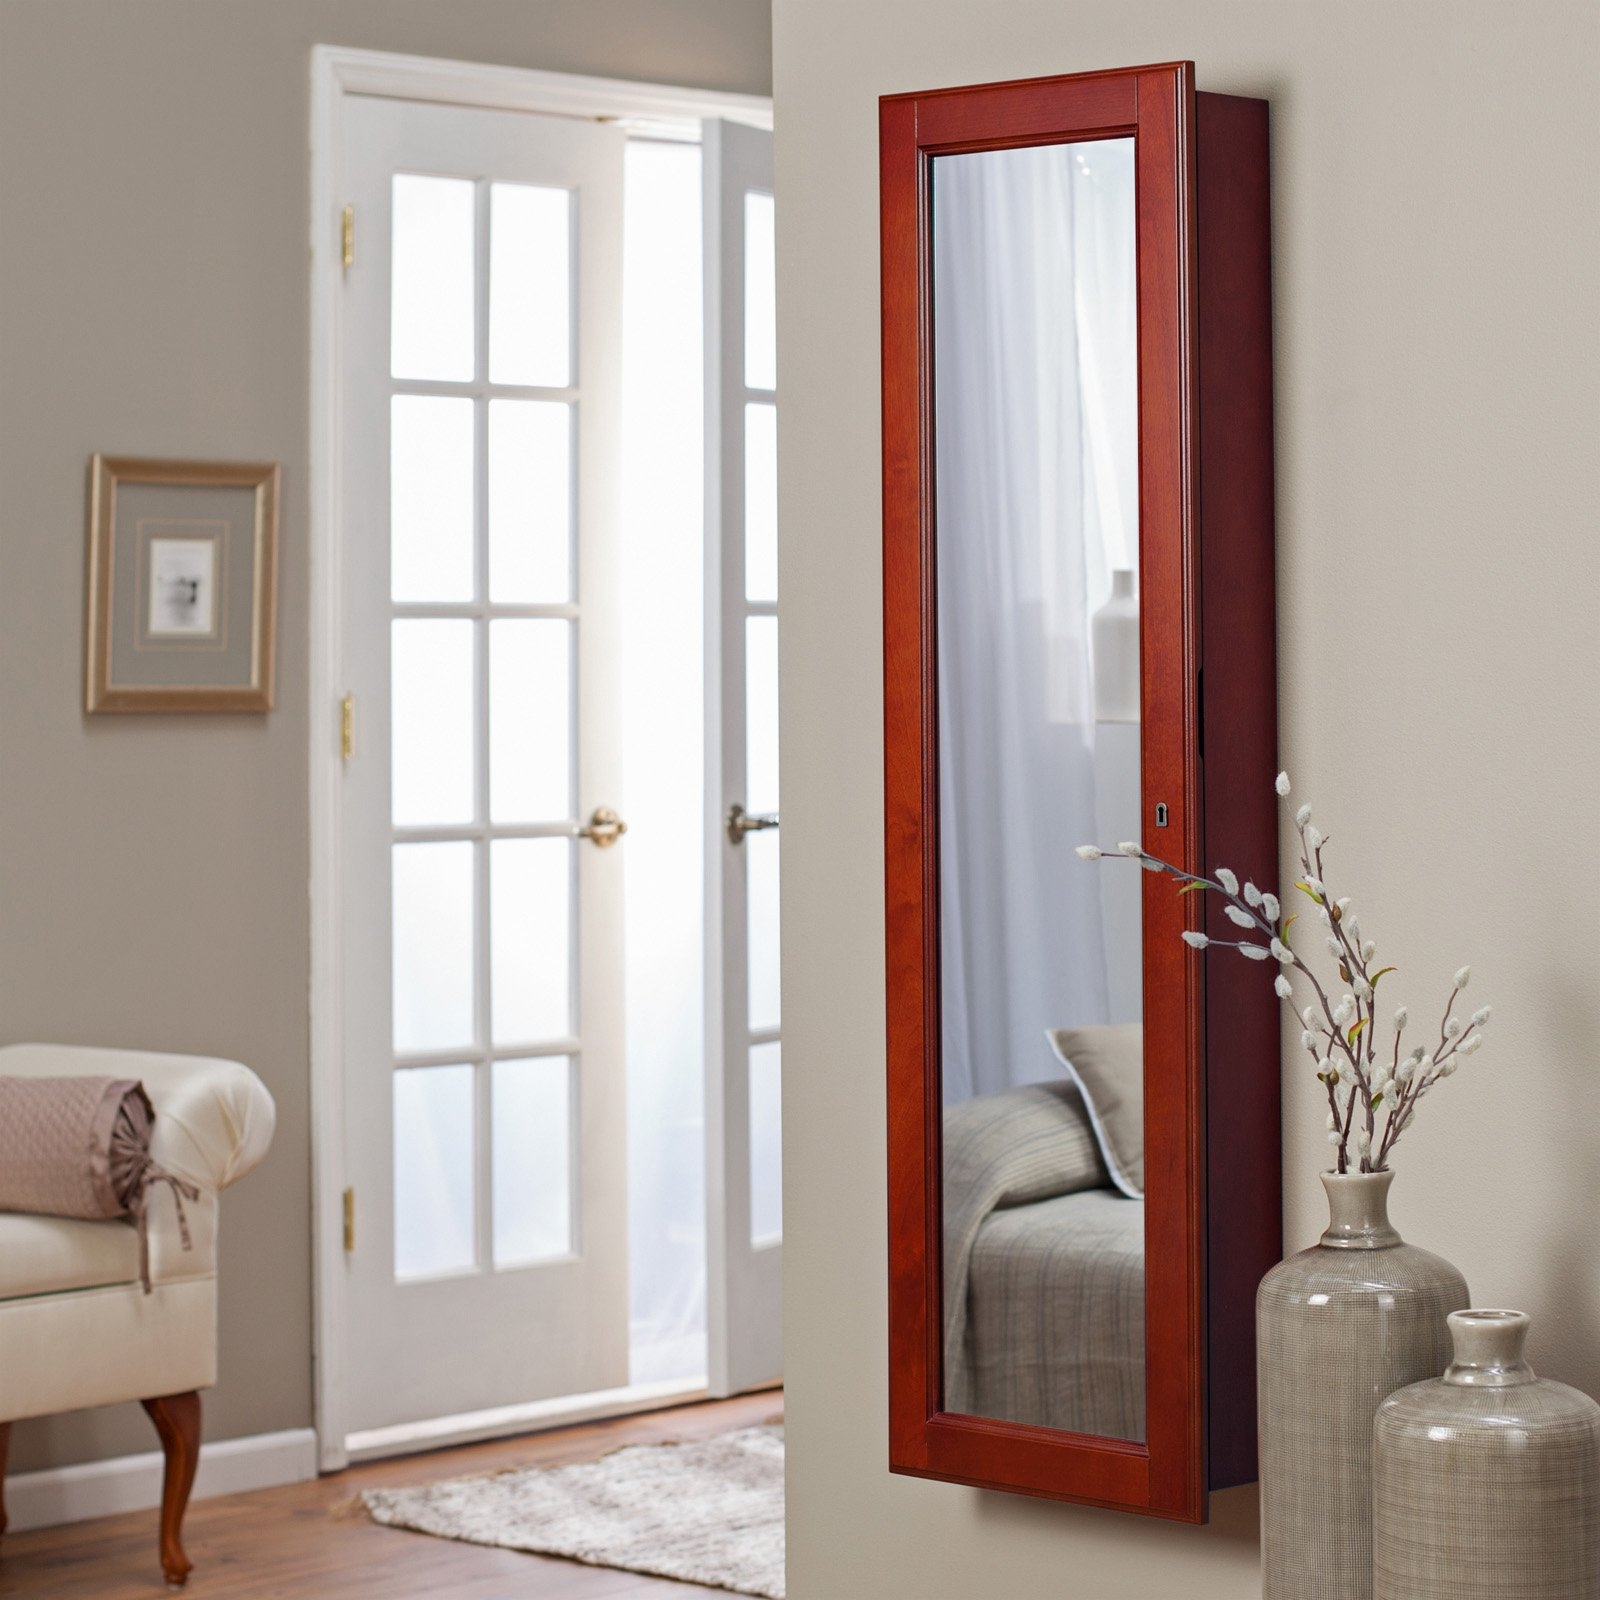 Wall Mounted Jewelry Armoire Full Length Mirror